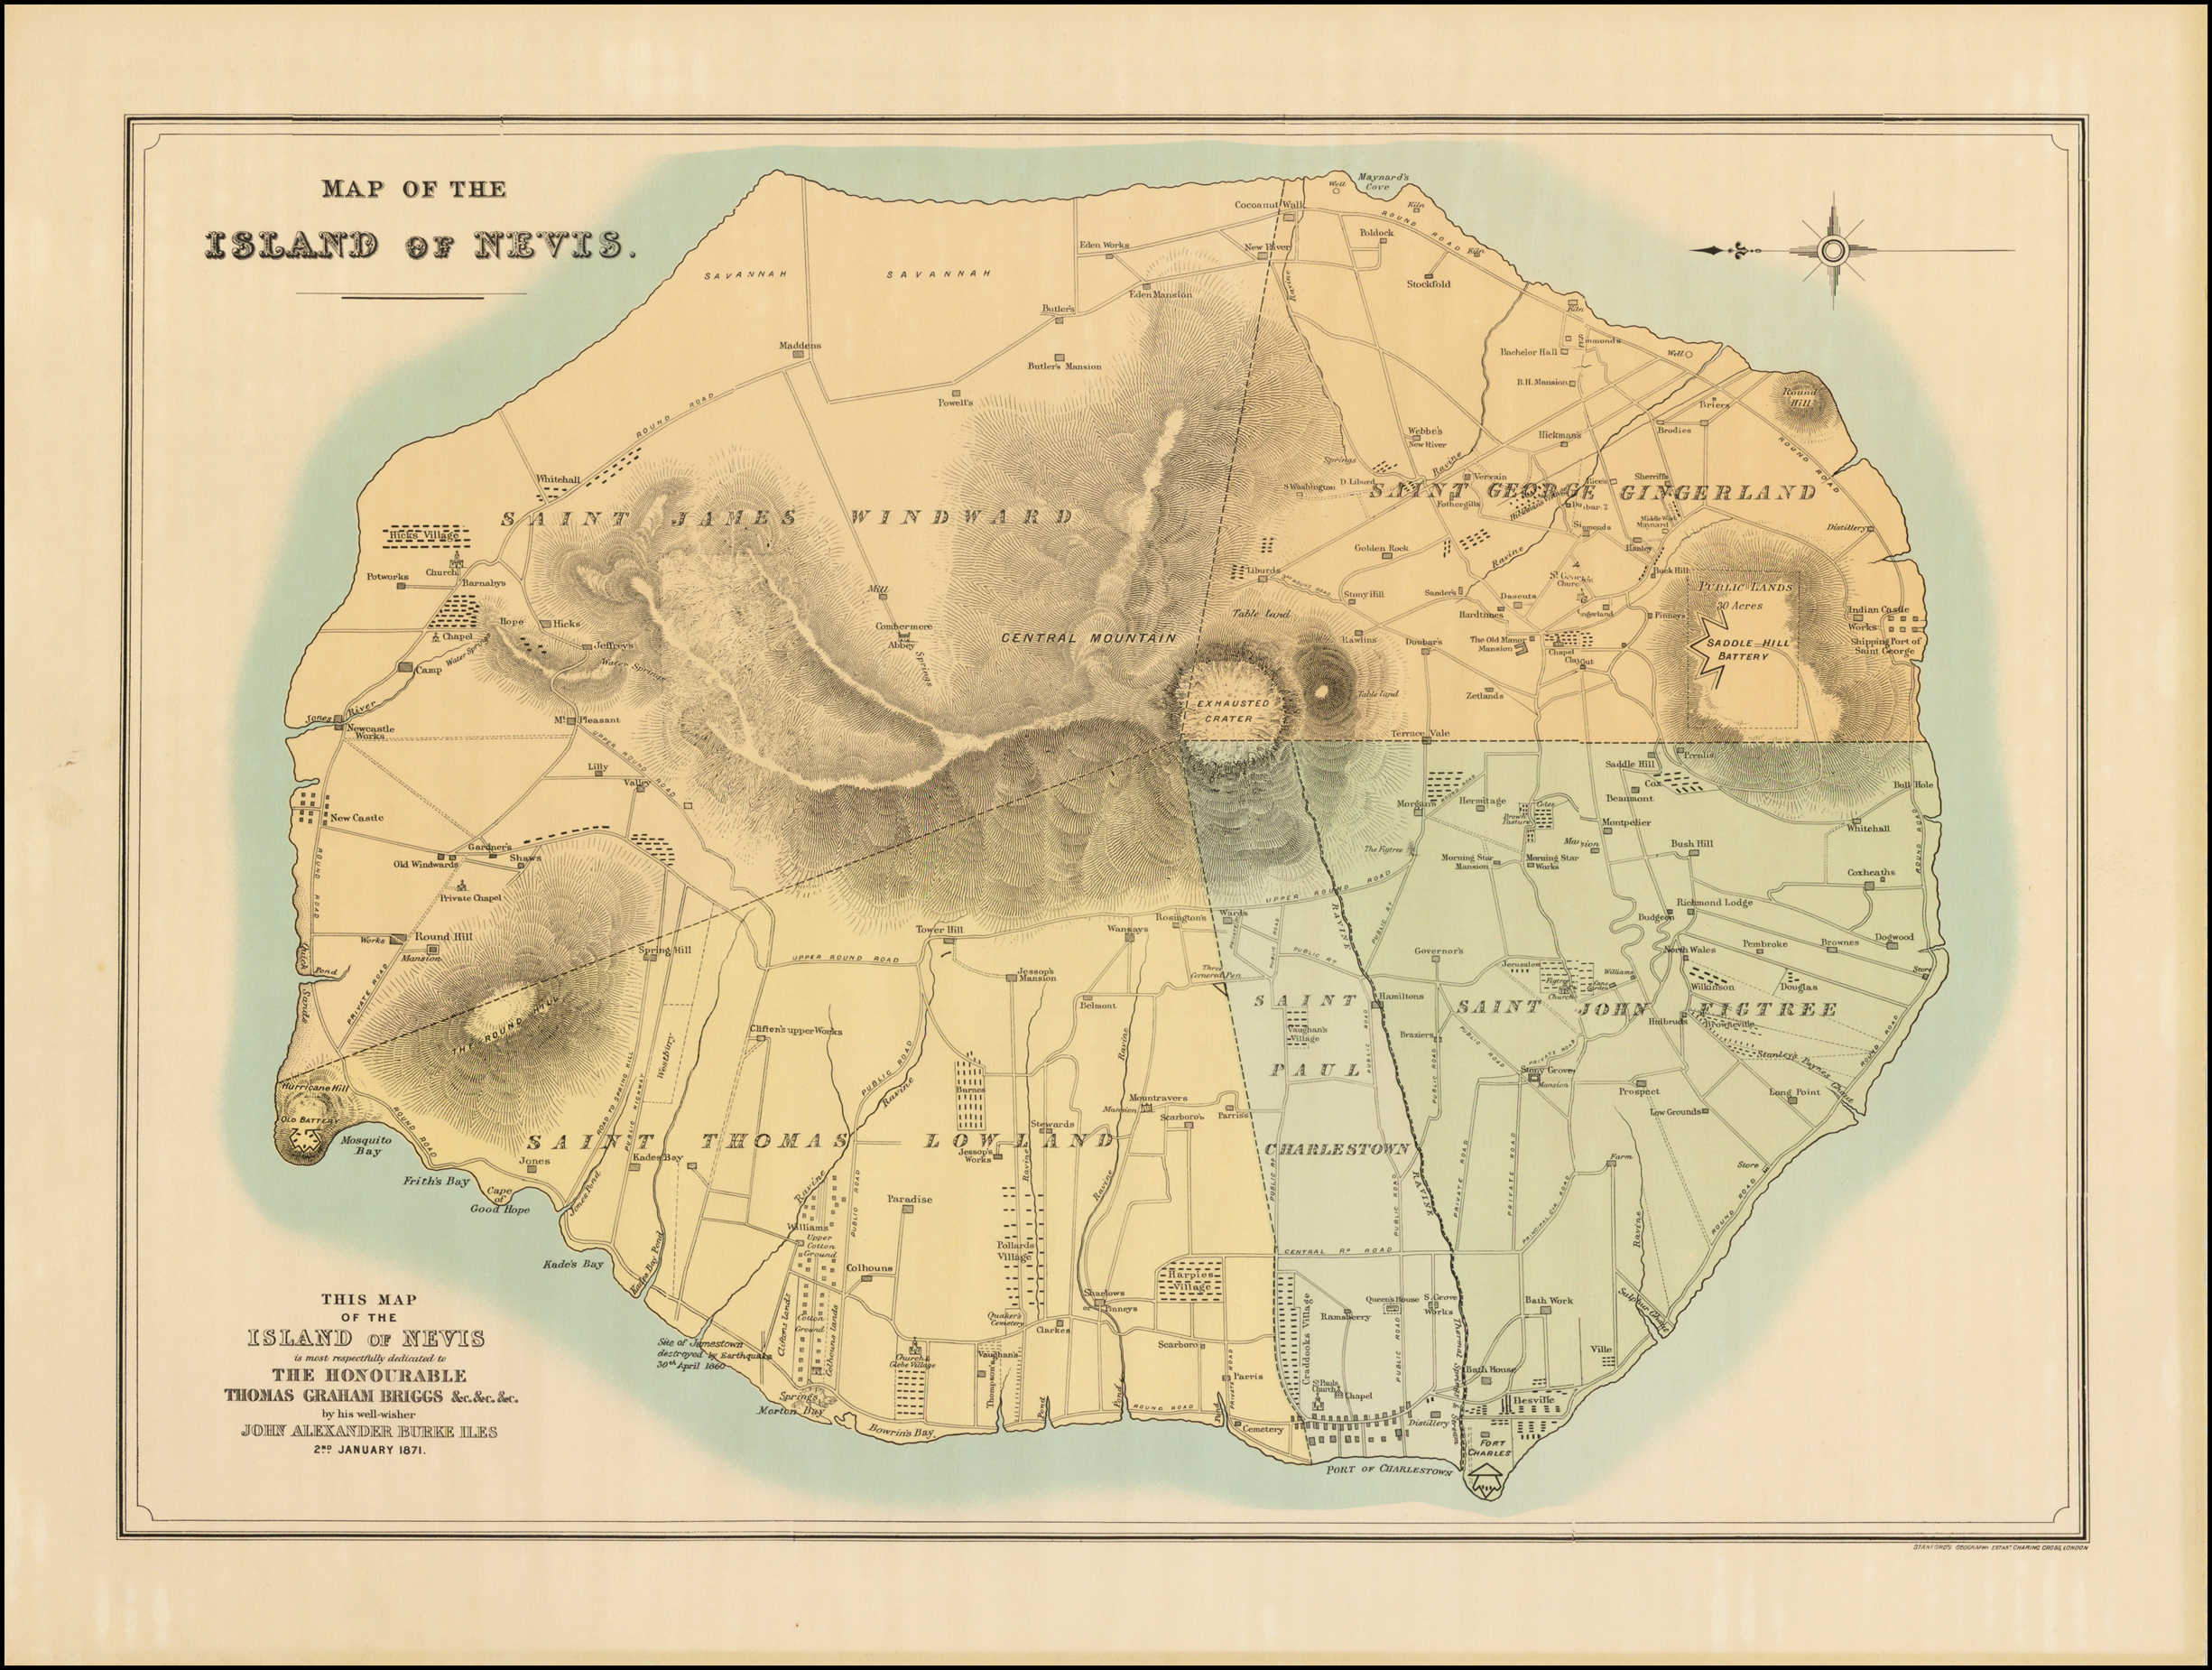 Map of the Island of Nevis / This Map of the Island of Nevis ...